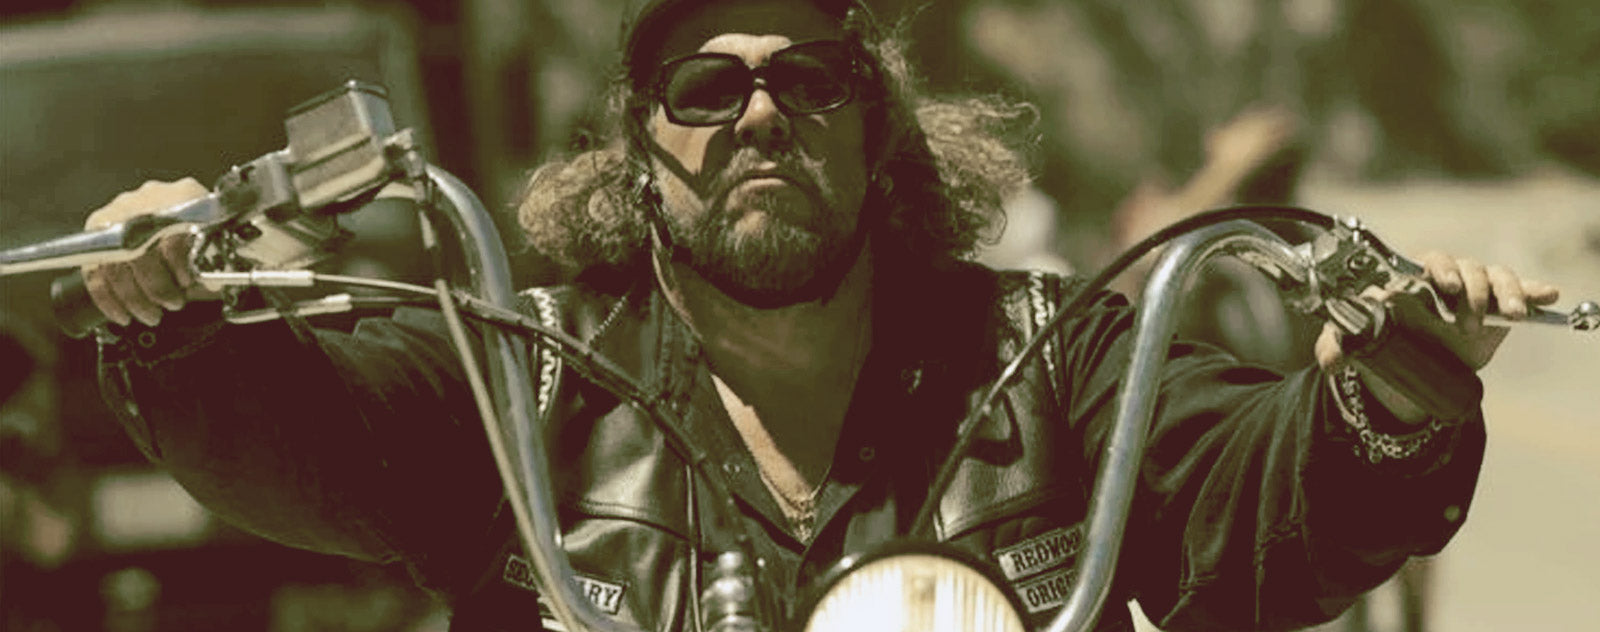 Moto Bobby Sons of Anarchy